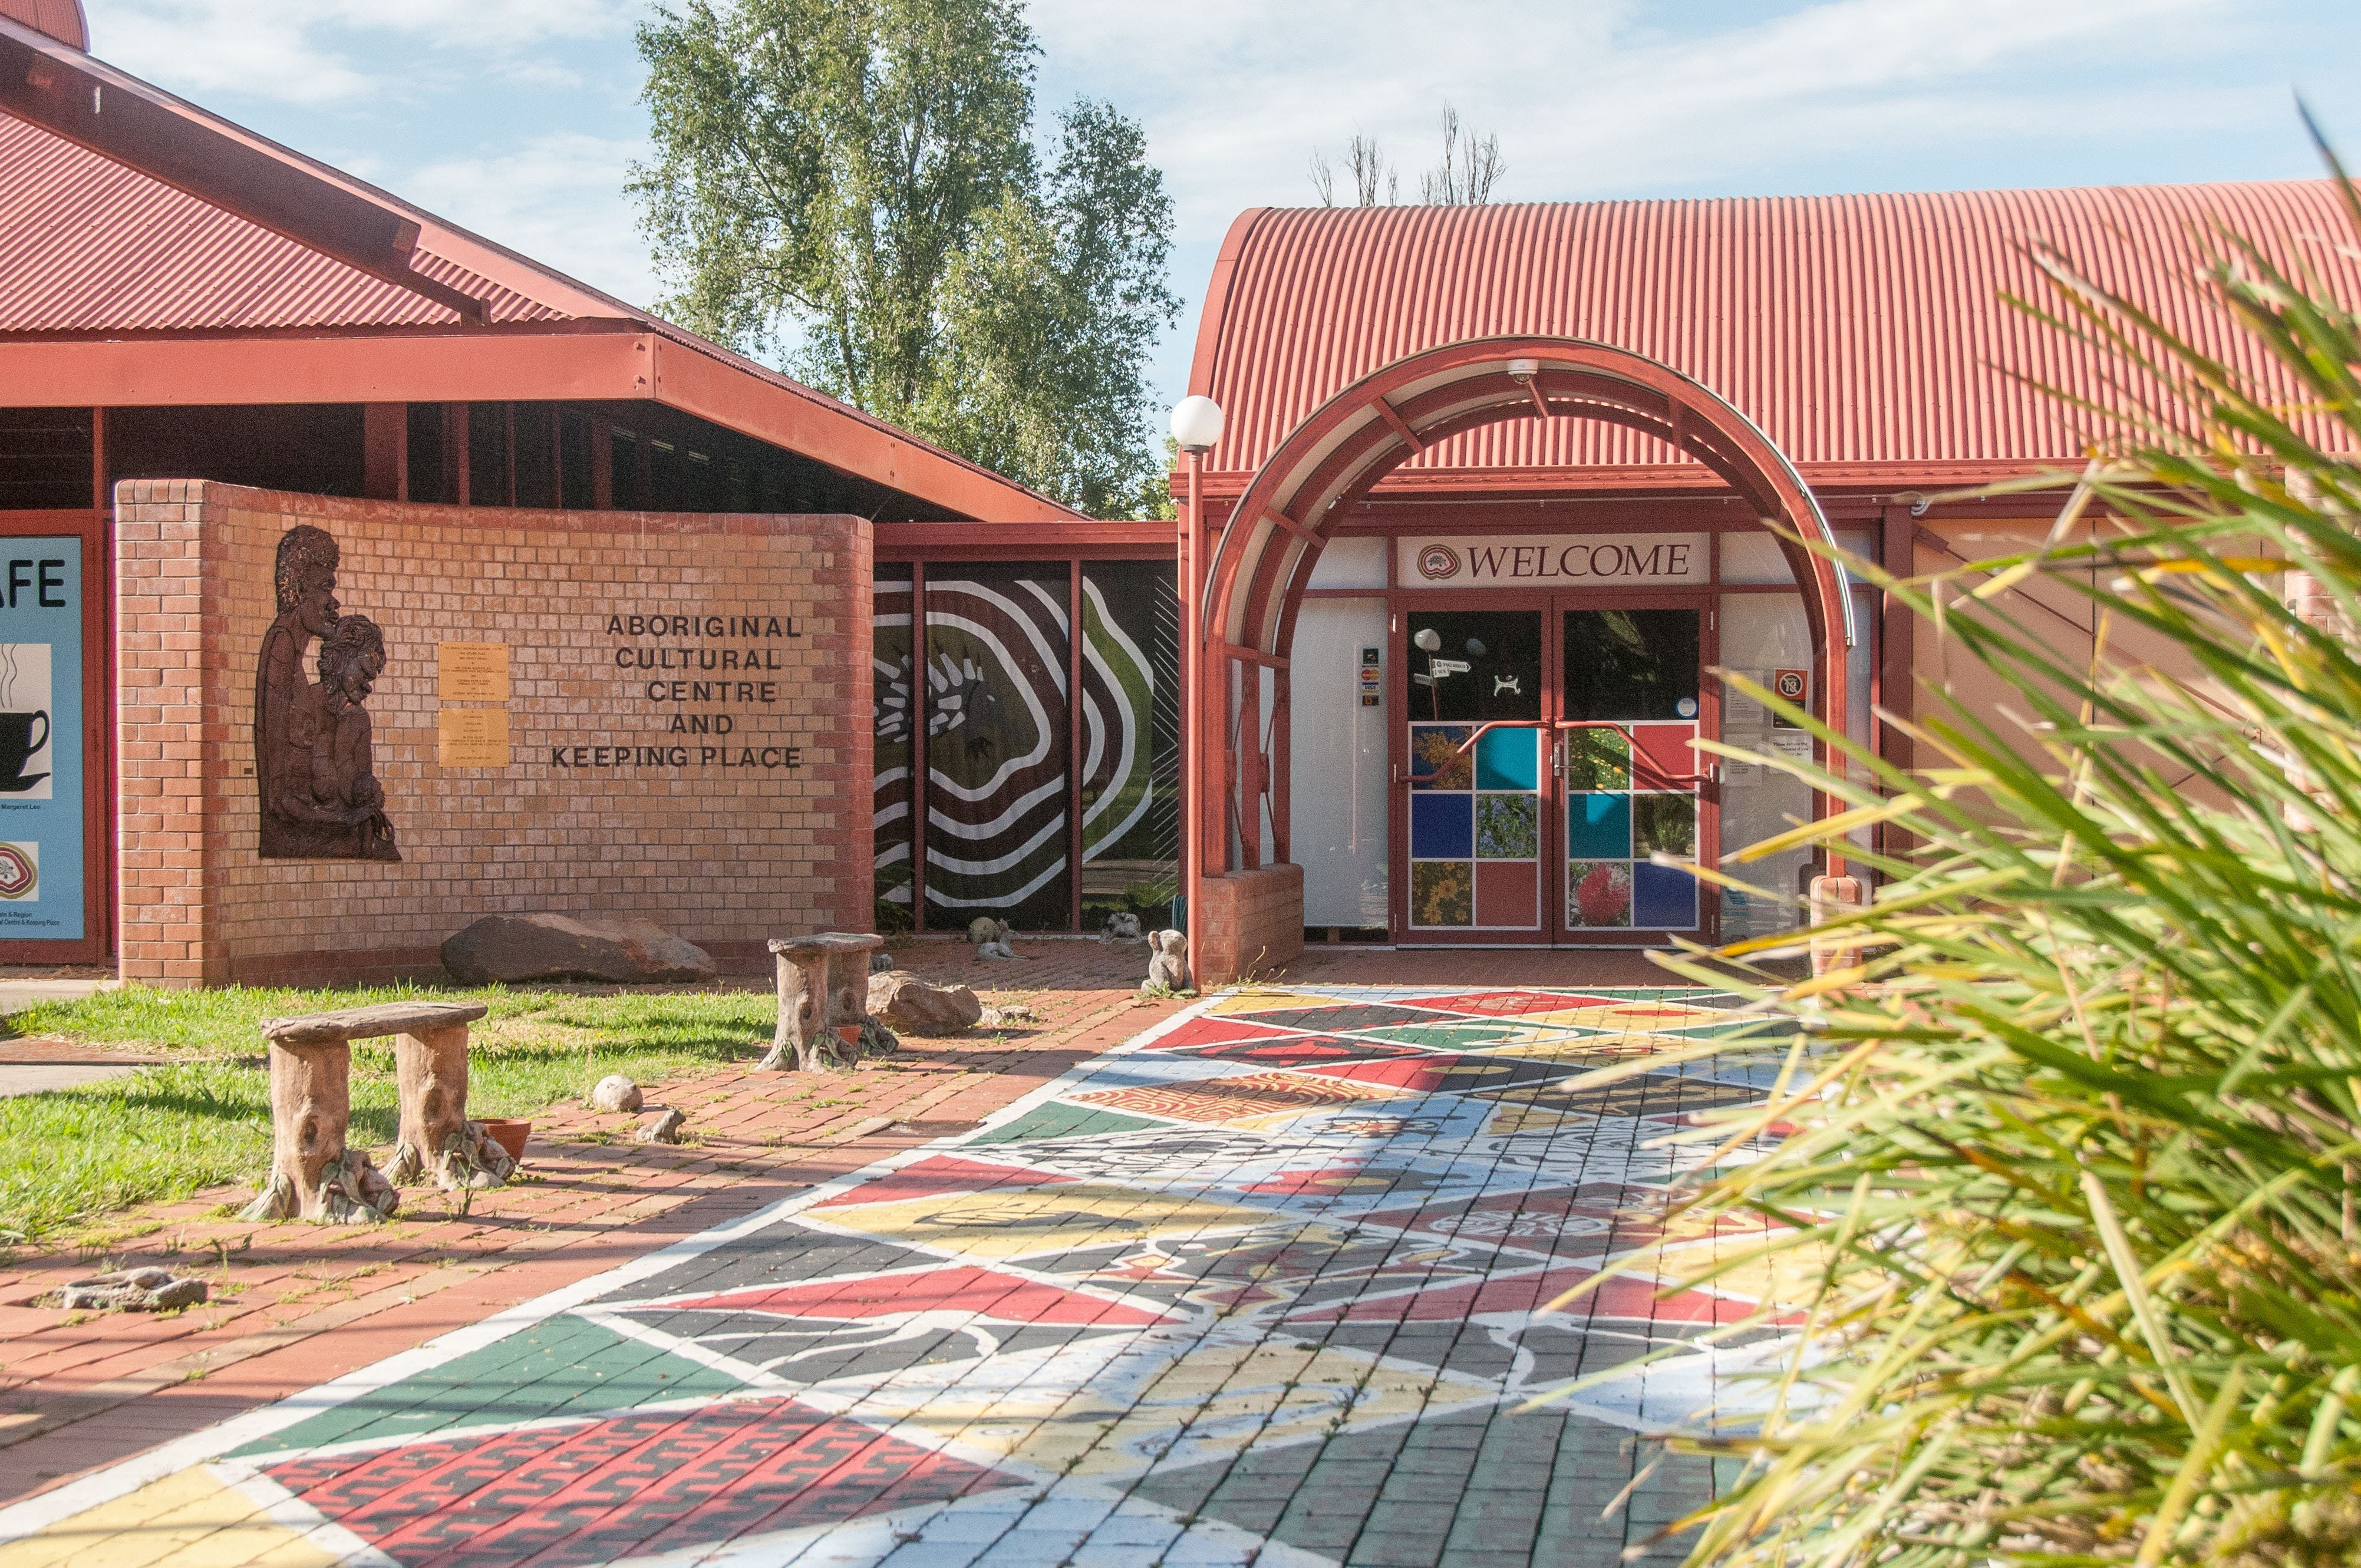 Armidale and Region Aboriginal Cultural Centre and Keeping Place - Tourism Adelaide